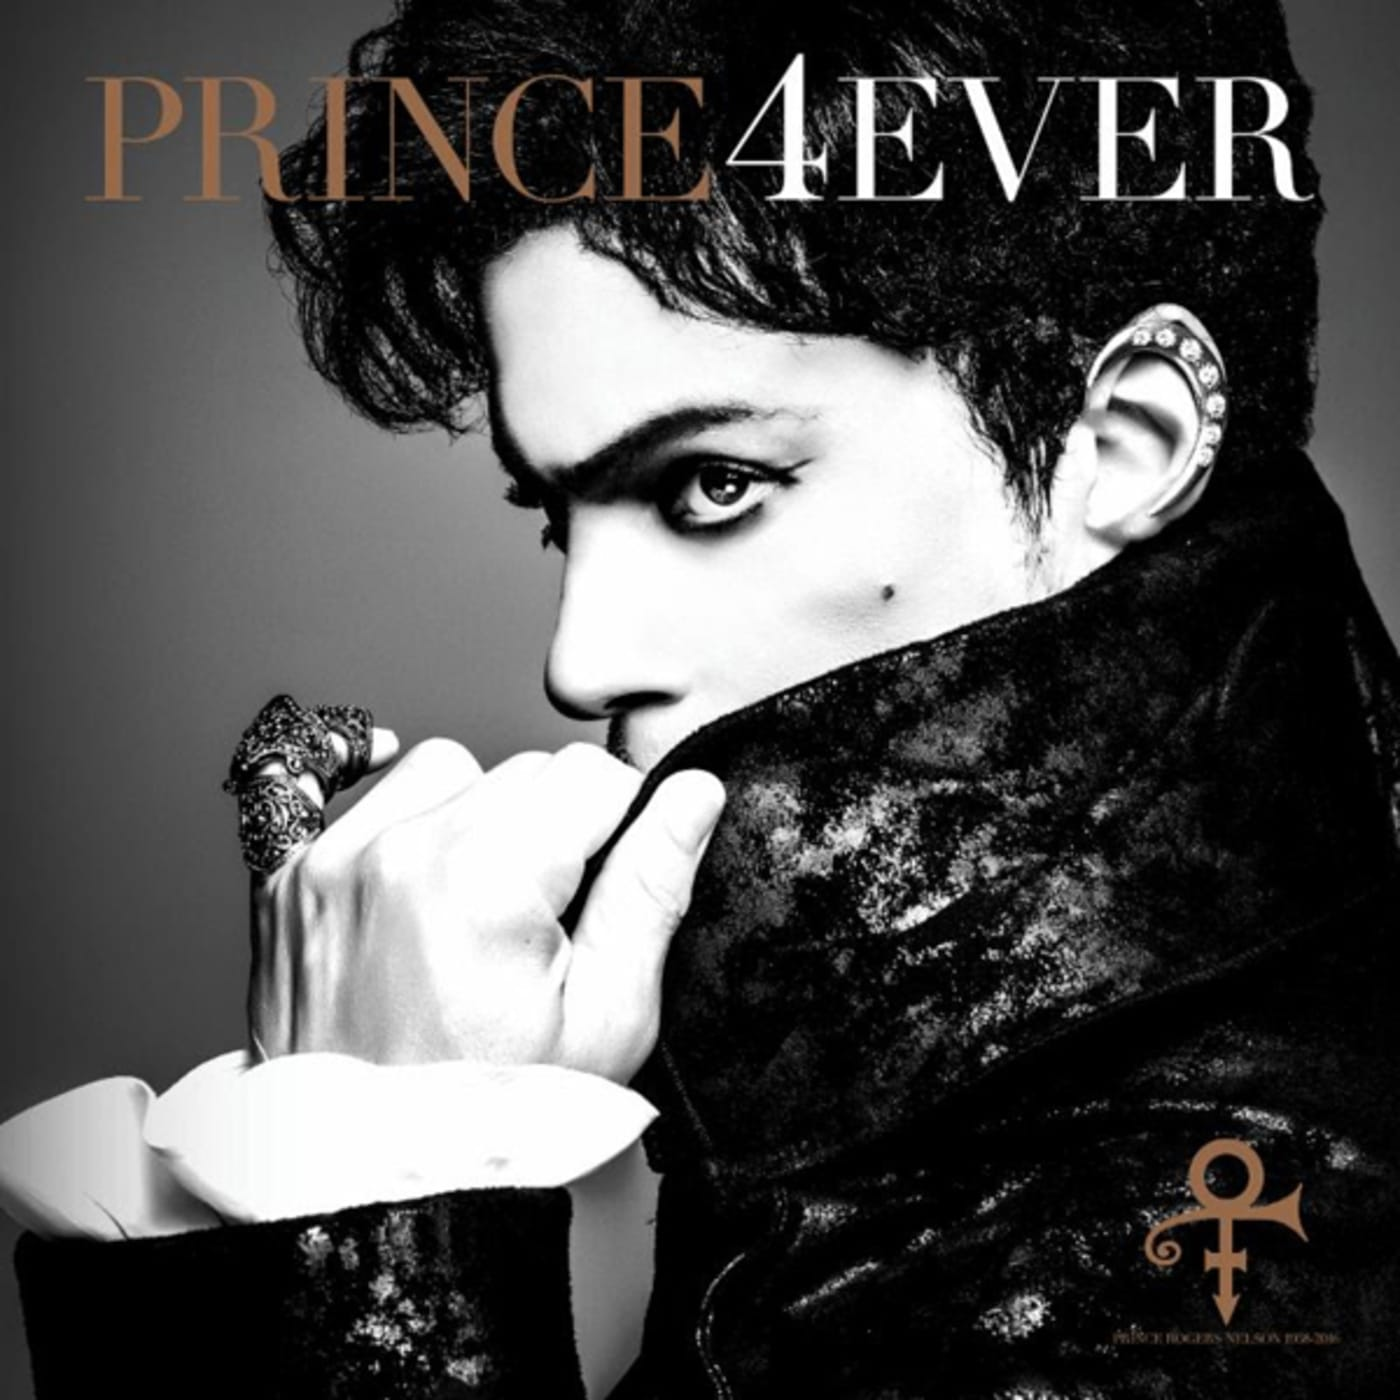 Prince '4Ever' covert